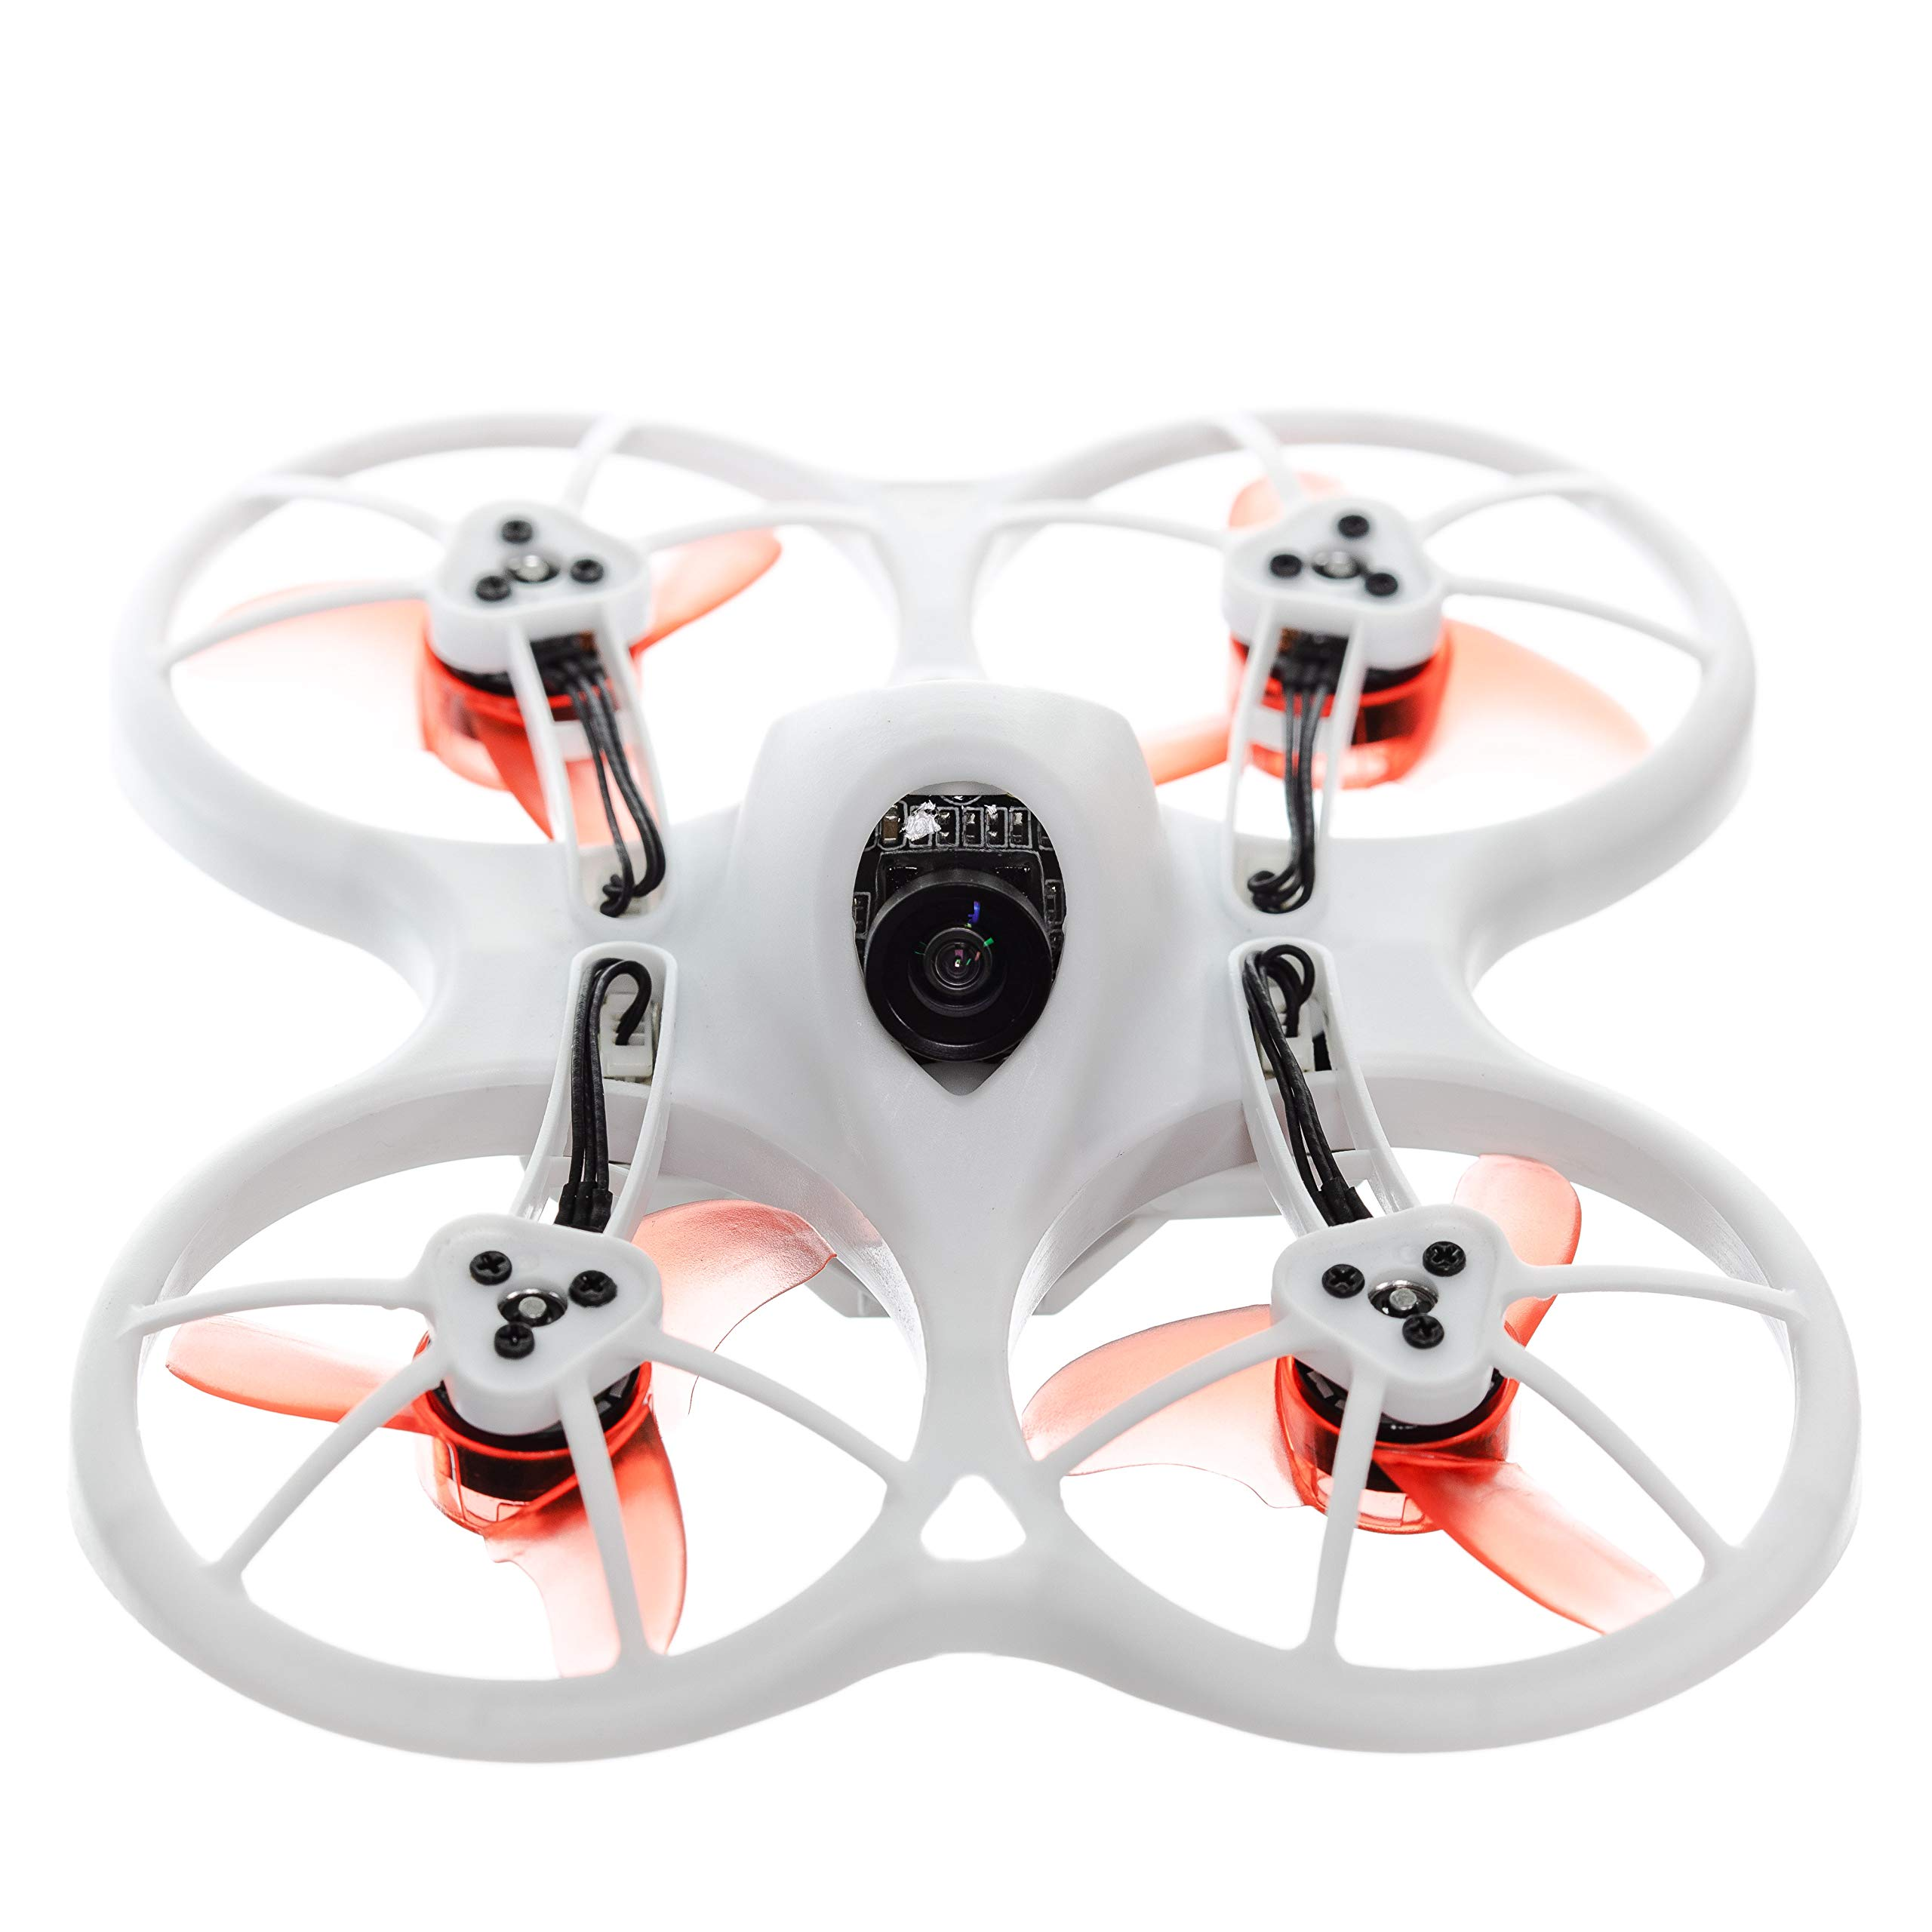 EMAX Tinyhawk Brushless Micro Indoor Racing Drone Whoop 75mm BNF FRSKY Ready to Fly FPV Beginners Durable Inverted Motors Full Acro Level Horizon Mode by EMAX